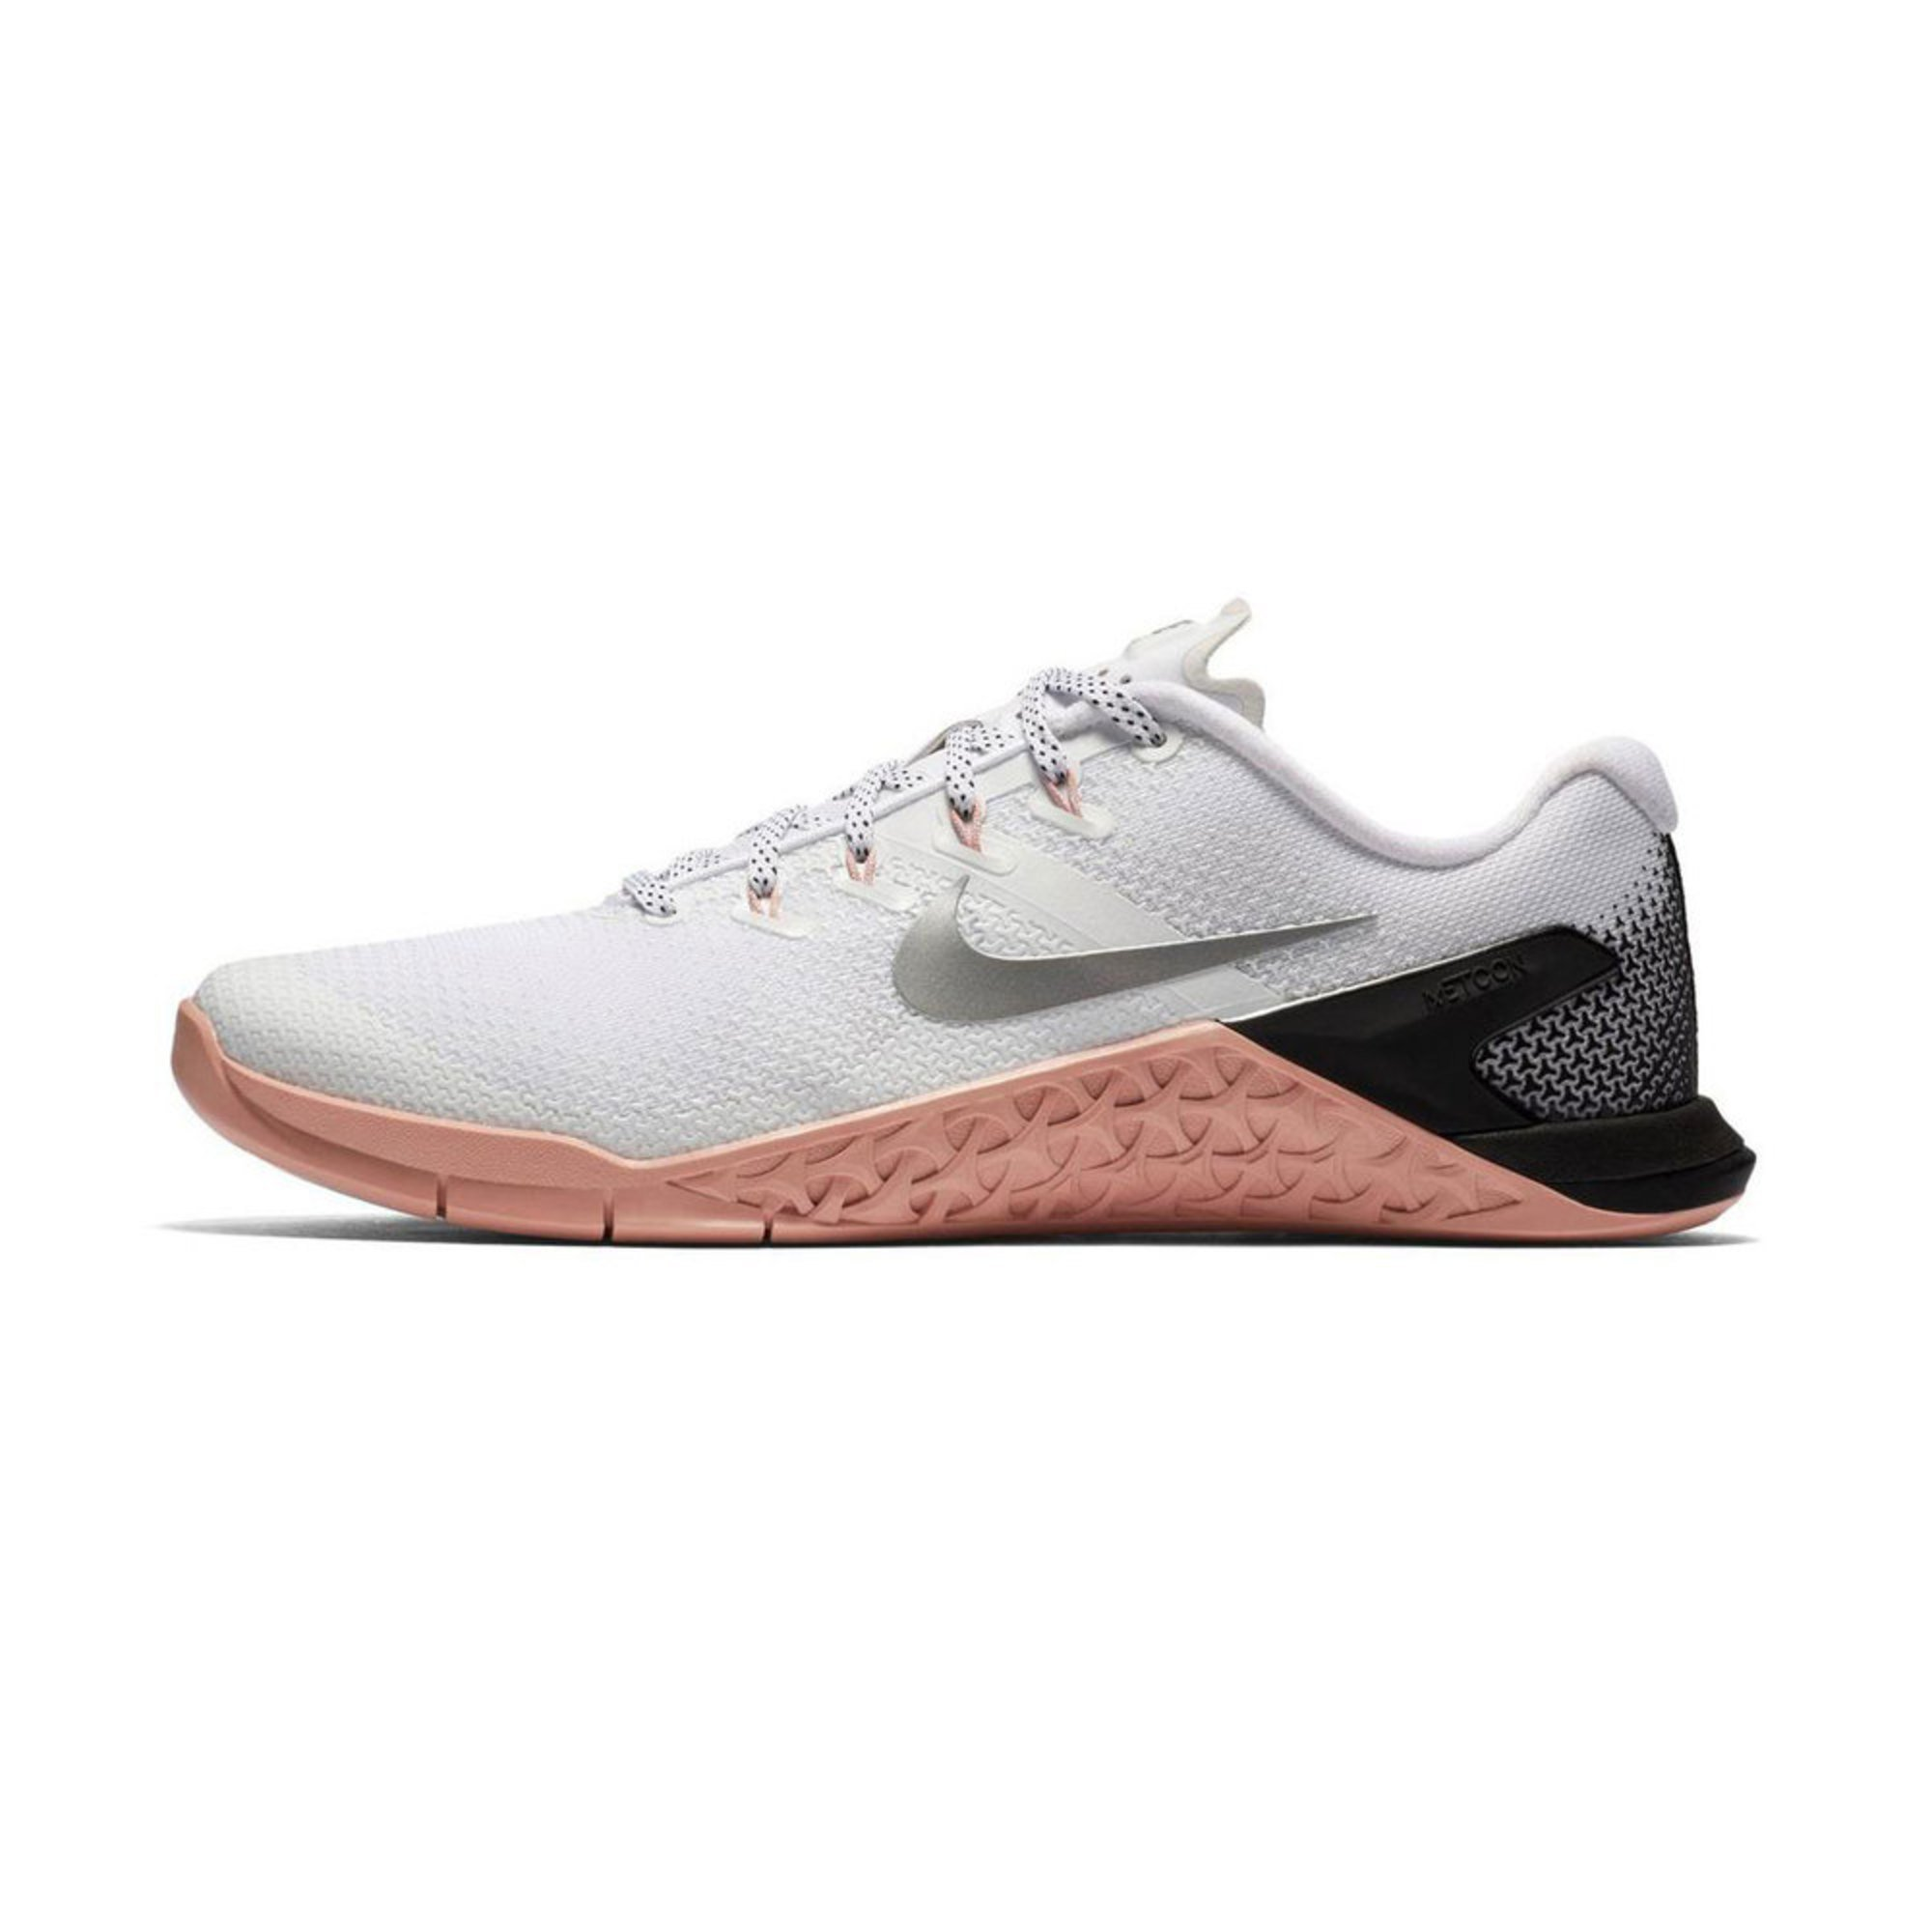 Nike Women s Metcon 4 Training Shoe  da83fddd6